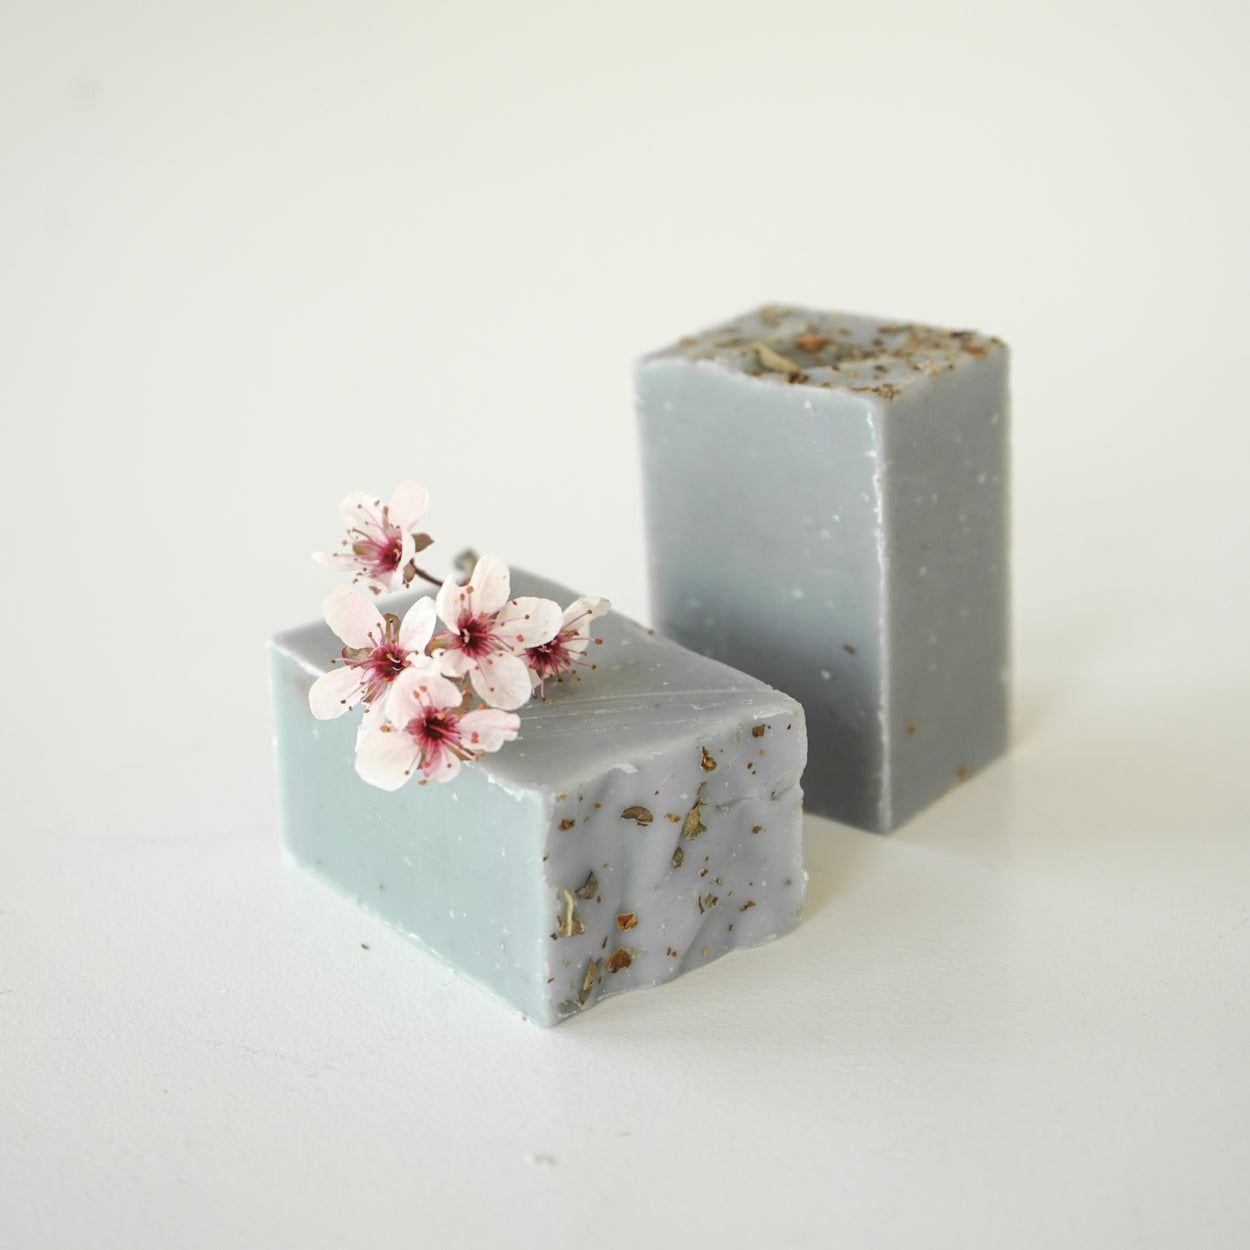 Small Soap - Rose + Berries